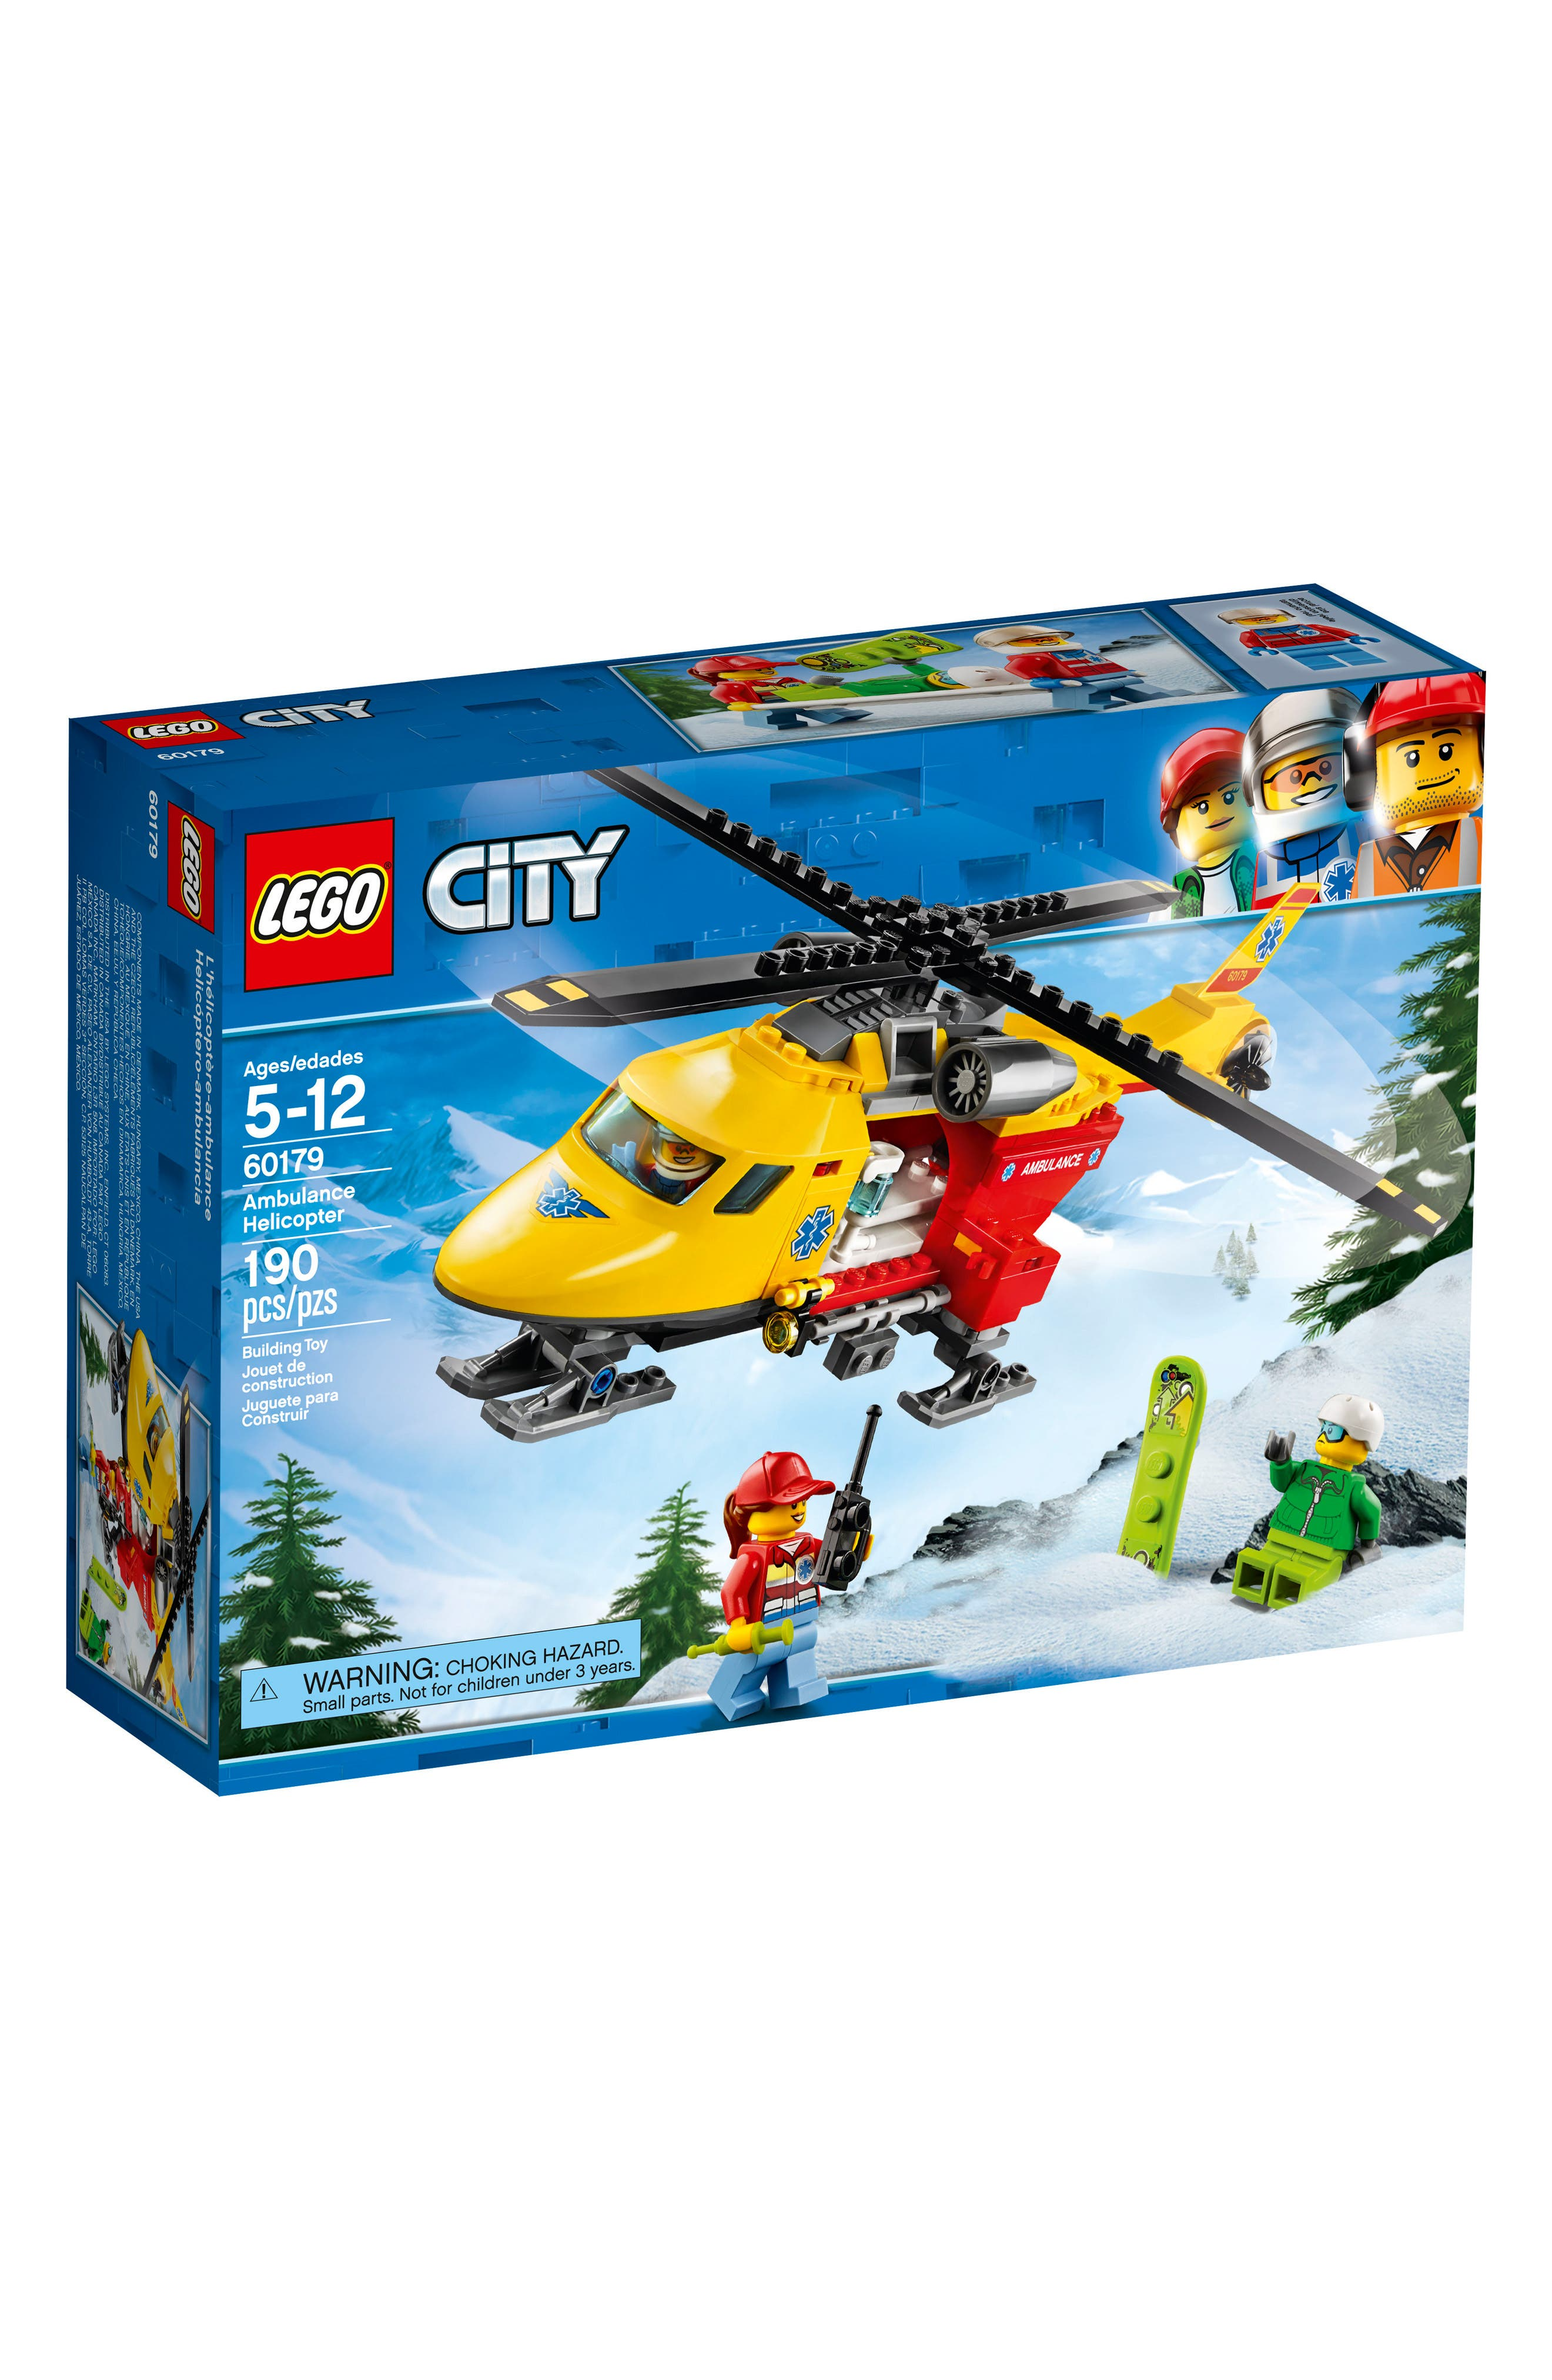 LEGO<sup>™</sup> City Ambulance Helicopter - 60179,                         Main,                         color, 700